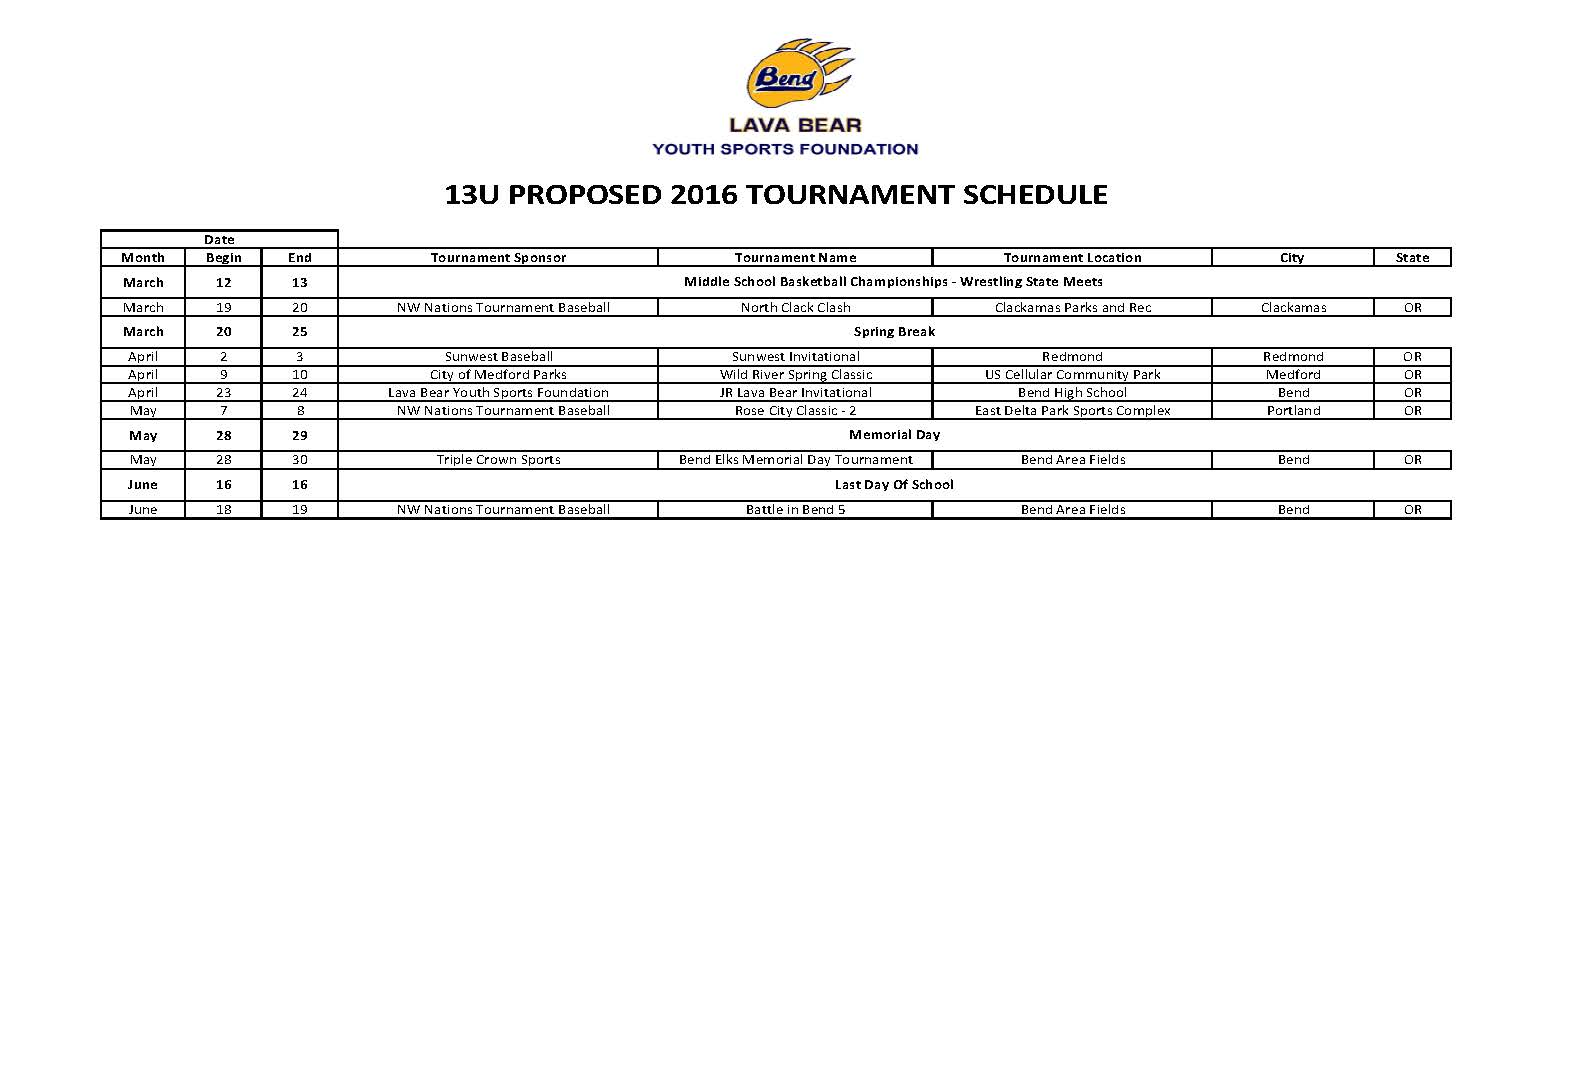 2016 TOURNAMENT SCHEDULE 13U 2016 TOURNAMENT SCHEDULE 13U